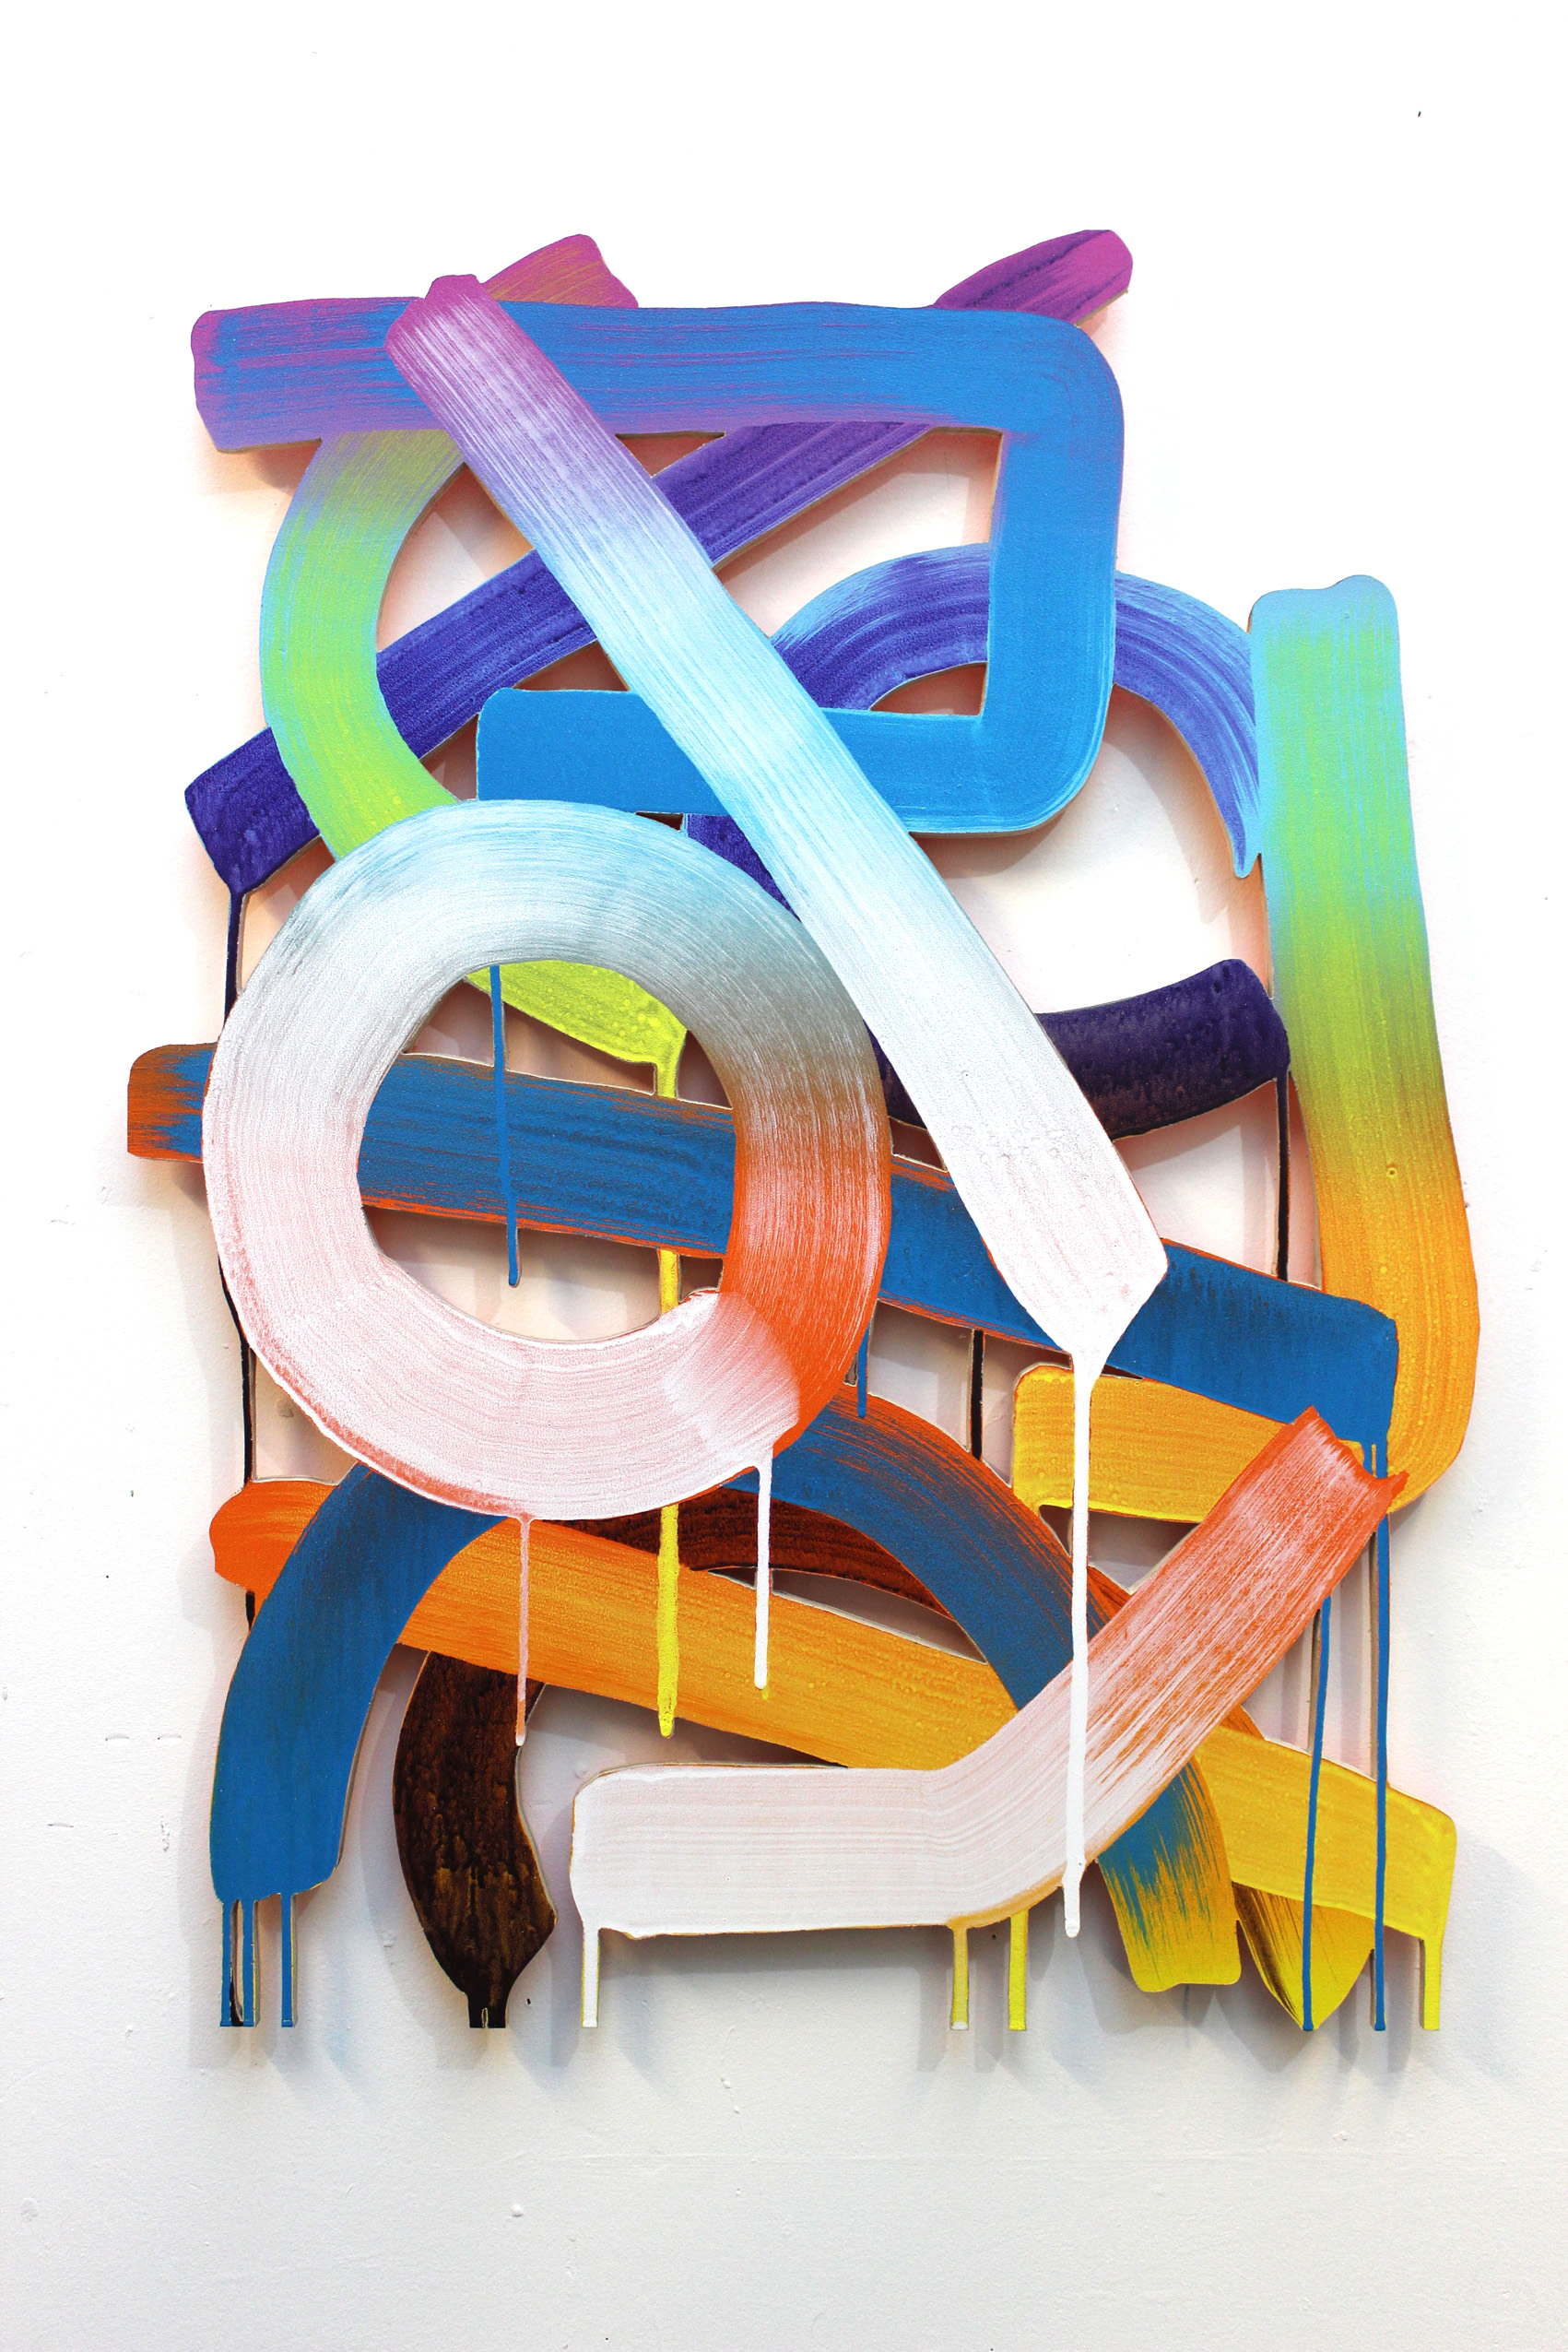 Ralph Anderson_Untitled Drip-Pop Painting_2014_Acrylic on Plywood_32x24